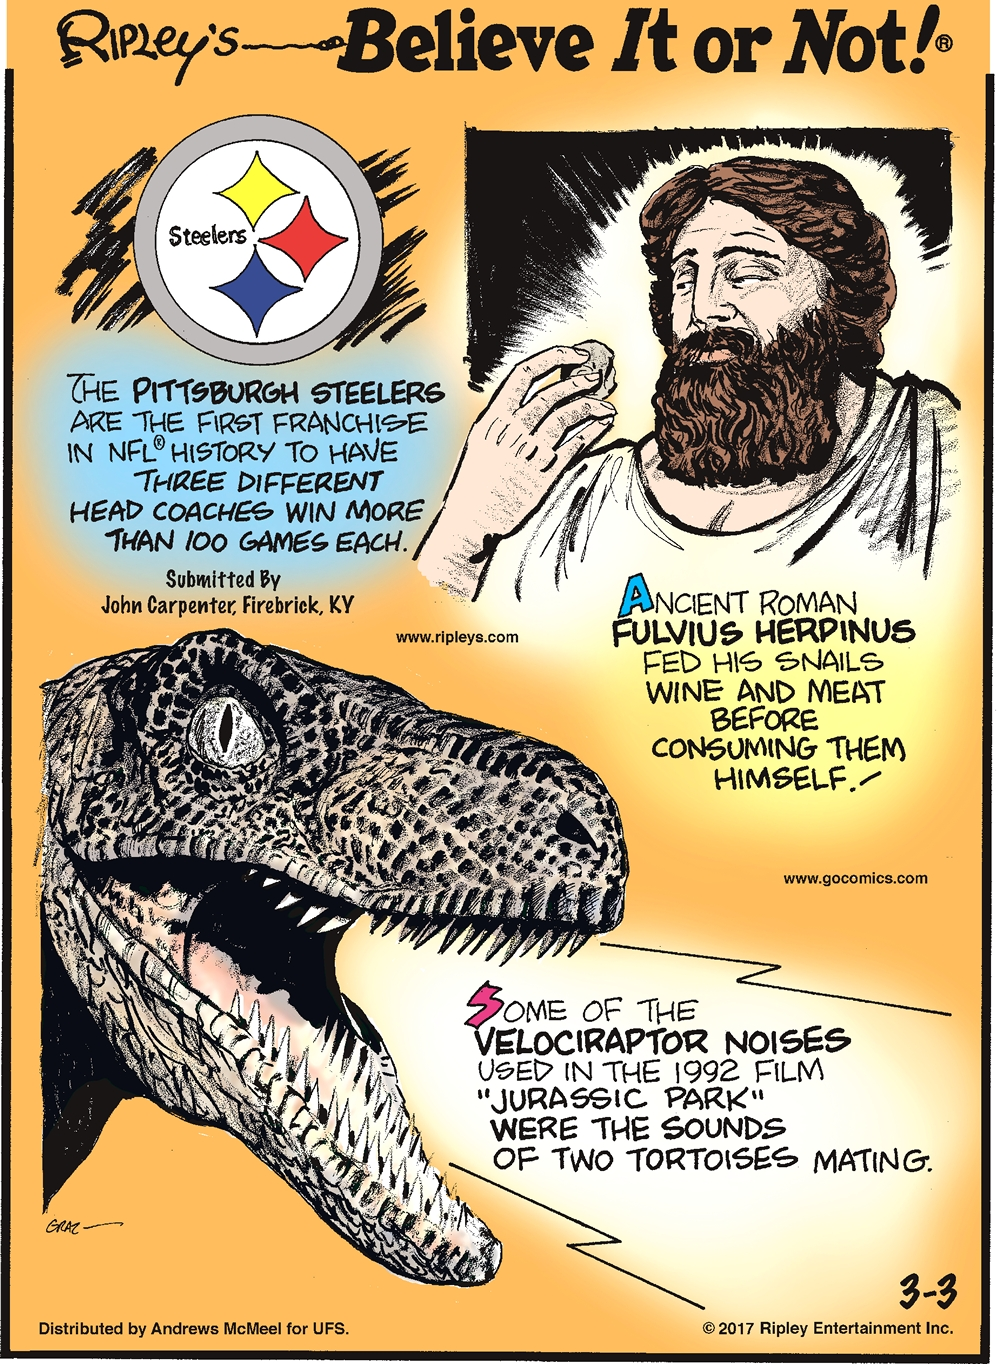 "The Pittsburgh Steelers are the first franchise in NFL history to have three different head coaches win more than 100 games each. Submitted by John Carpenter, Firebrick, KY.--------------------- Ancient Roman Fulvius Herpinus fed his snails wine and meat before consuming them himself!-------------------- Some of the velociraptor noises used in the 1992 film ""Jurassic Park"" were the sounds of two tortoises mating."